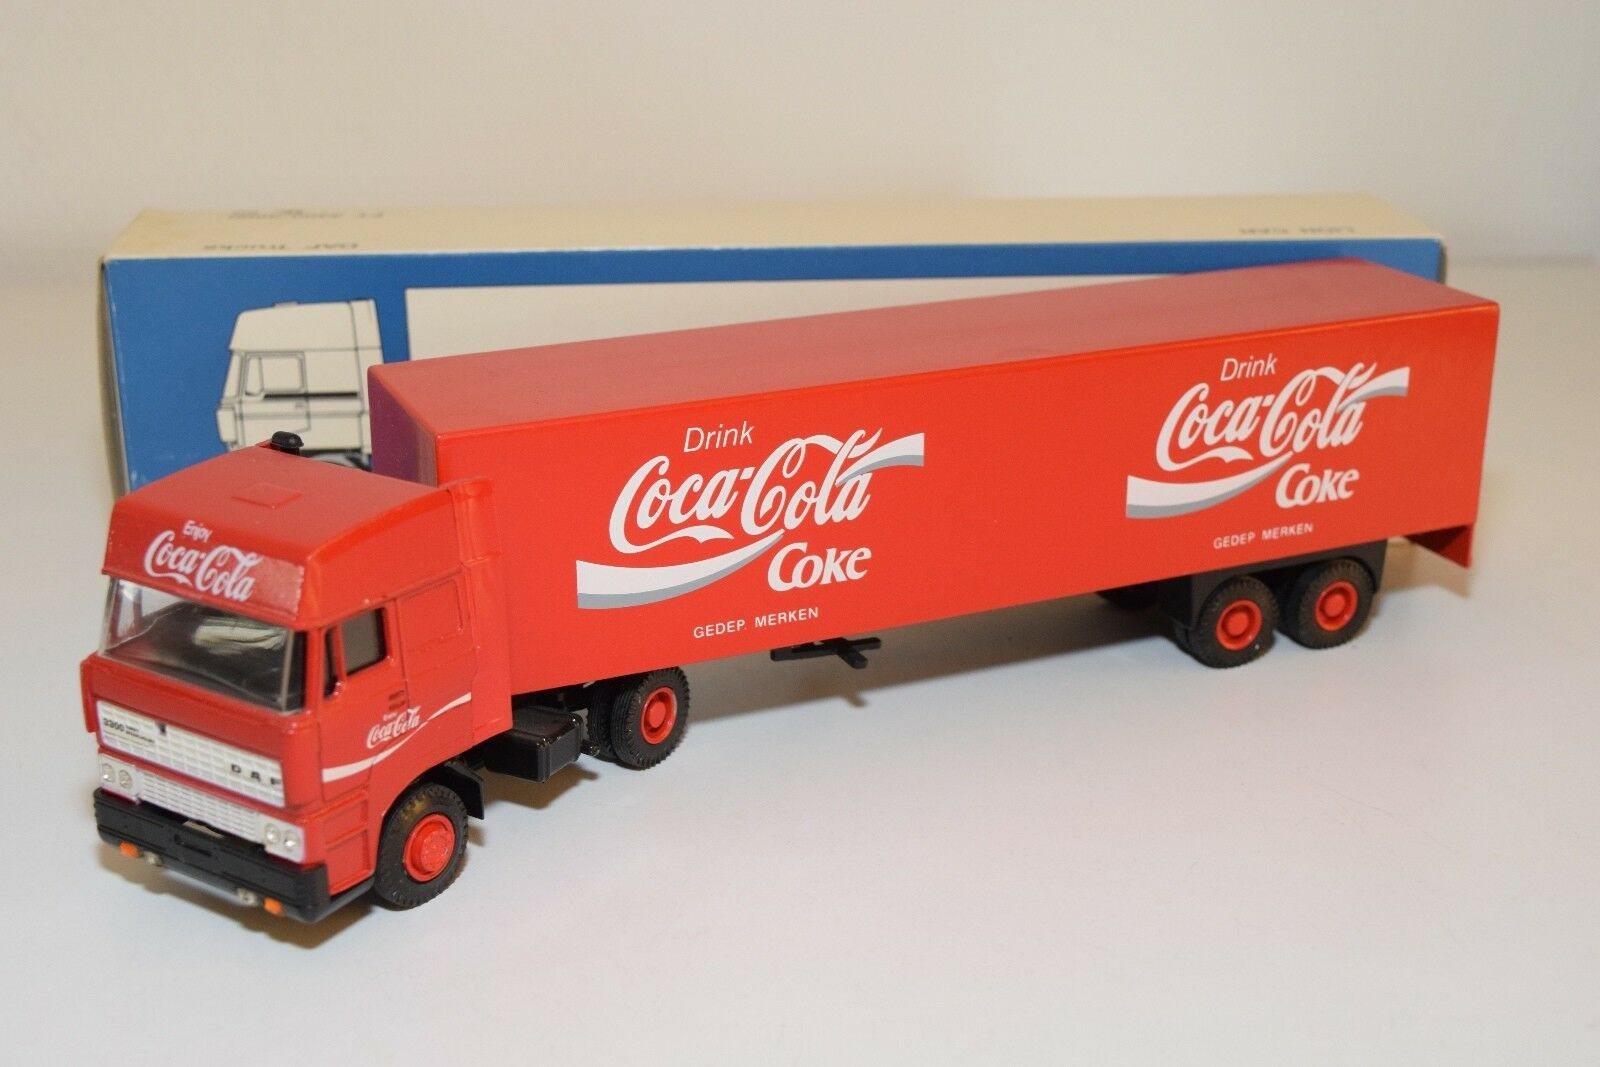 ± LION CAR DAF 3300 SPACECAB TRUCK WITH TRAILER COCA-COLA COKE DRINK NMINT BOXED